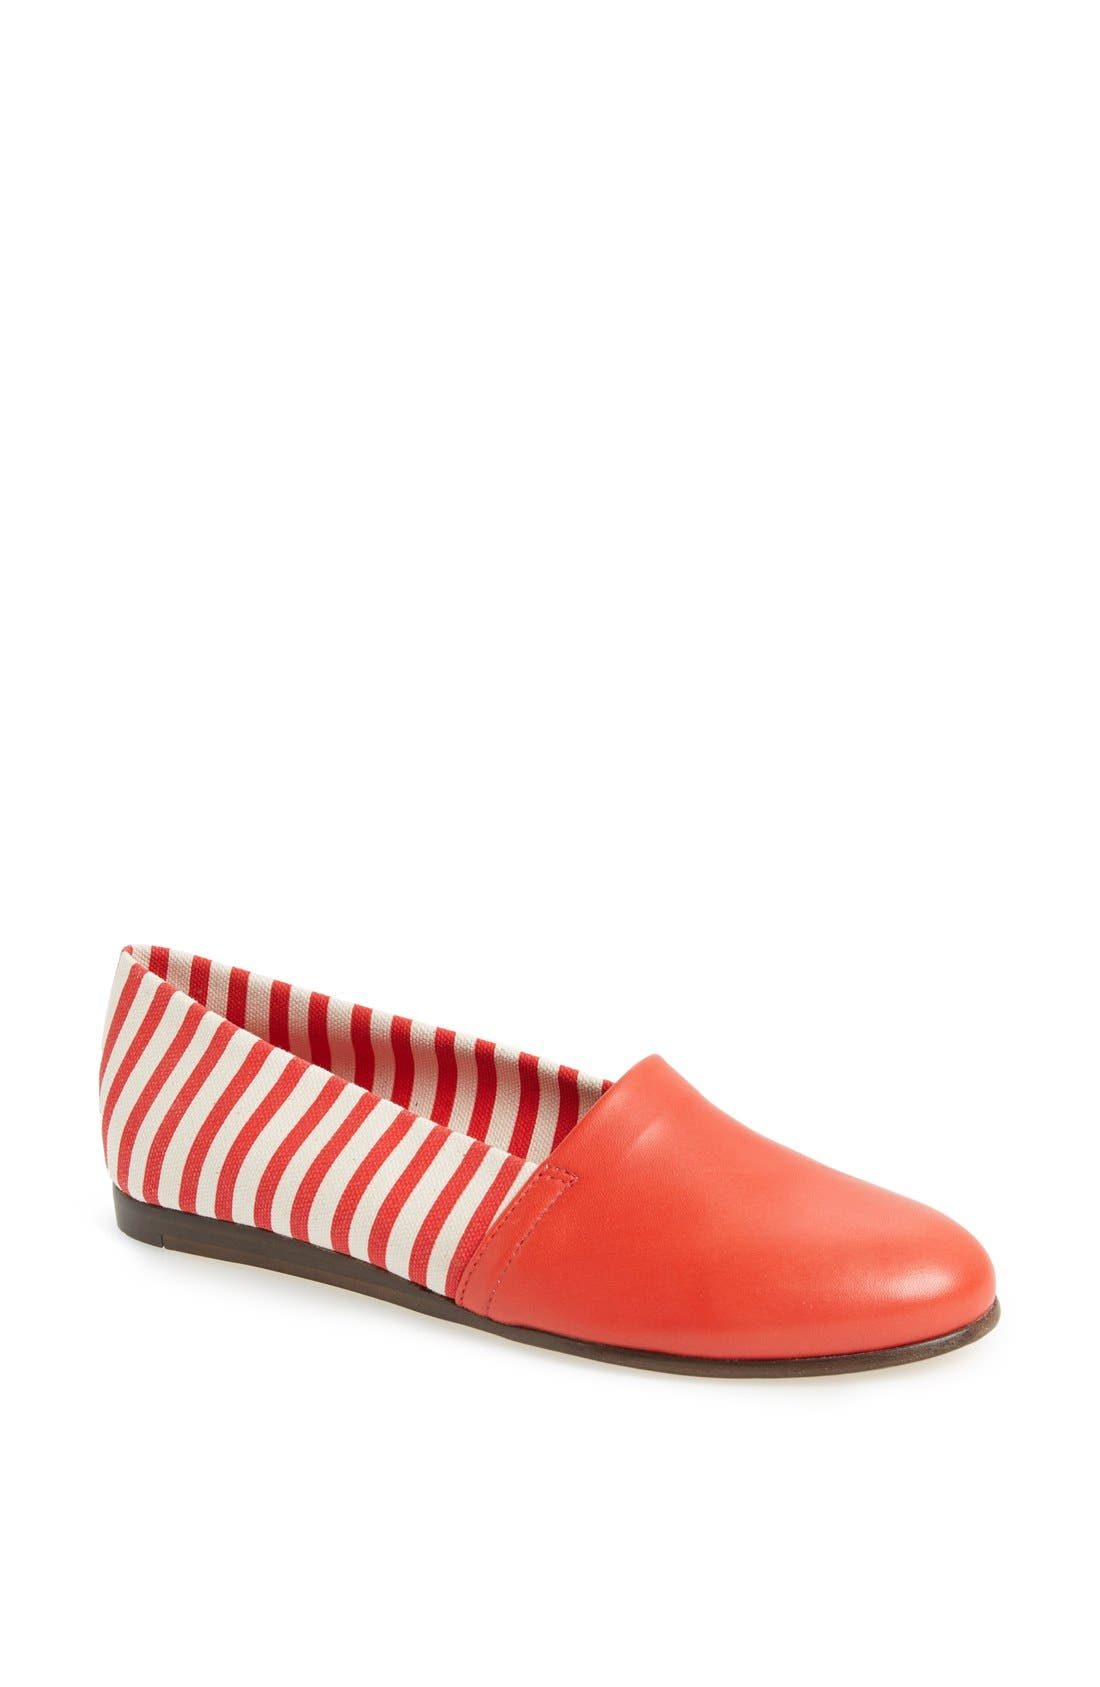 Alternate Image 1 Selected - CB Made in Italy Stripe Flat Slip-On